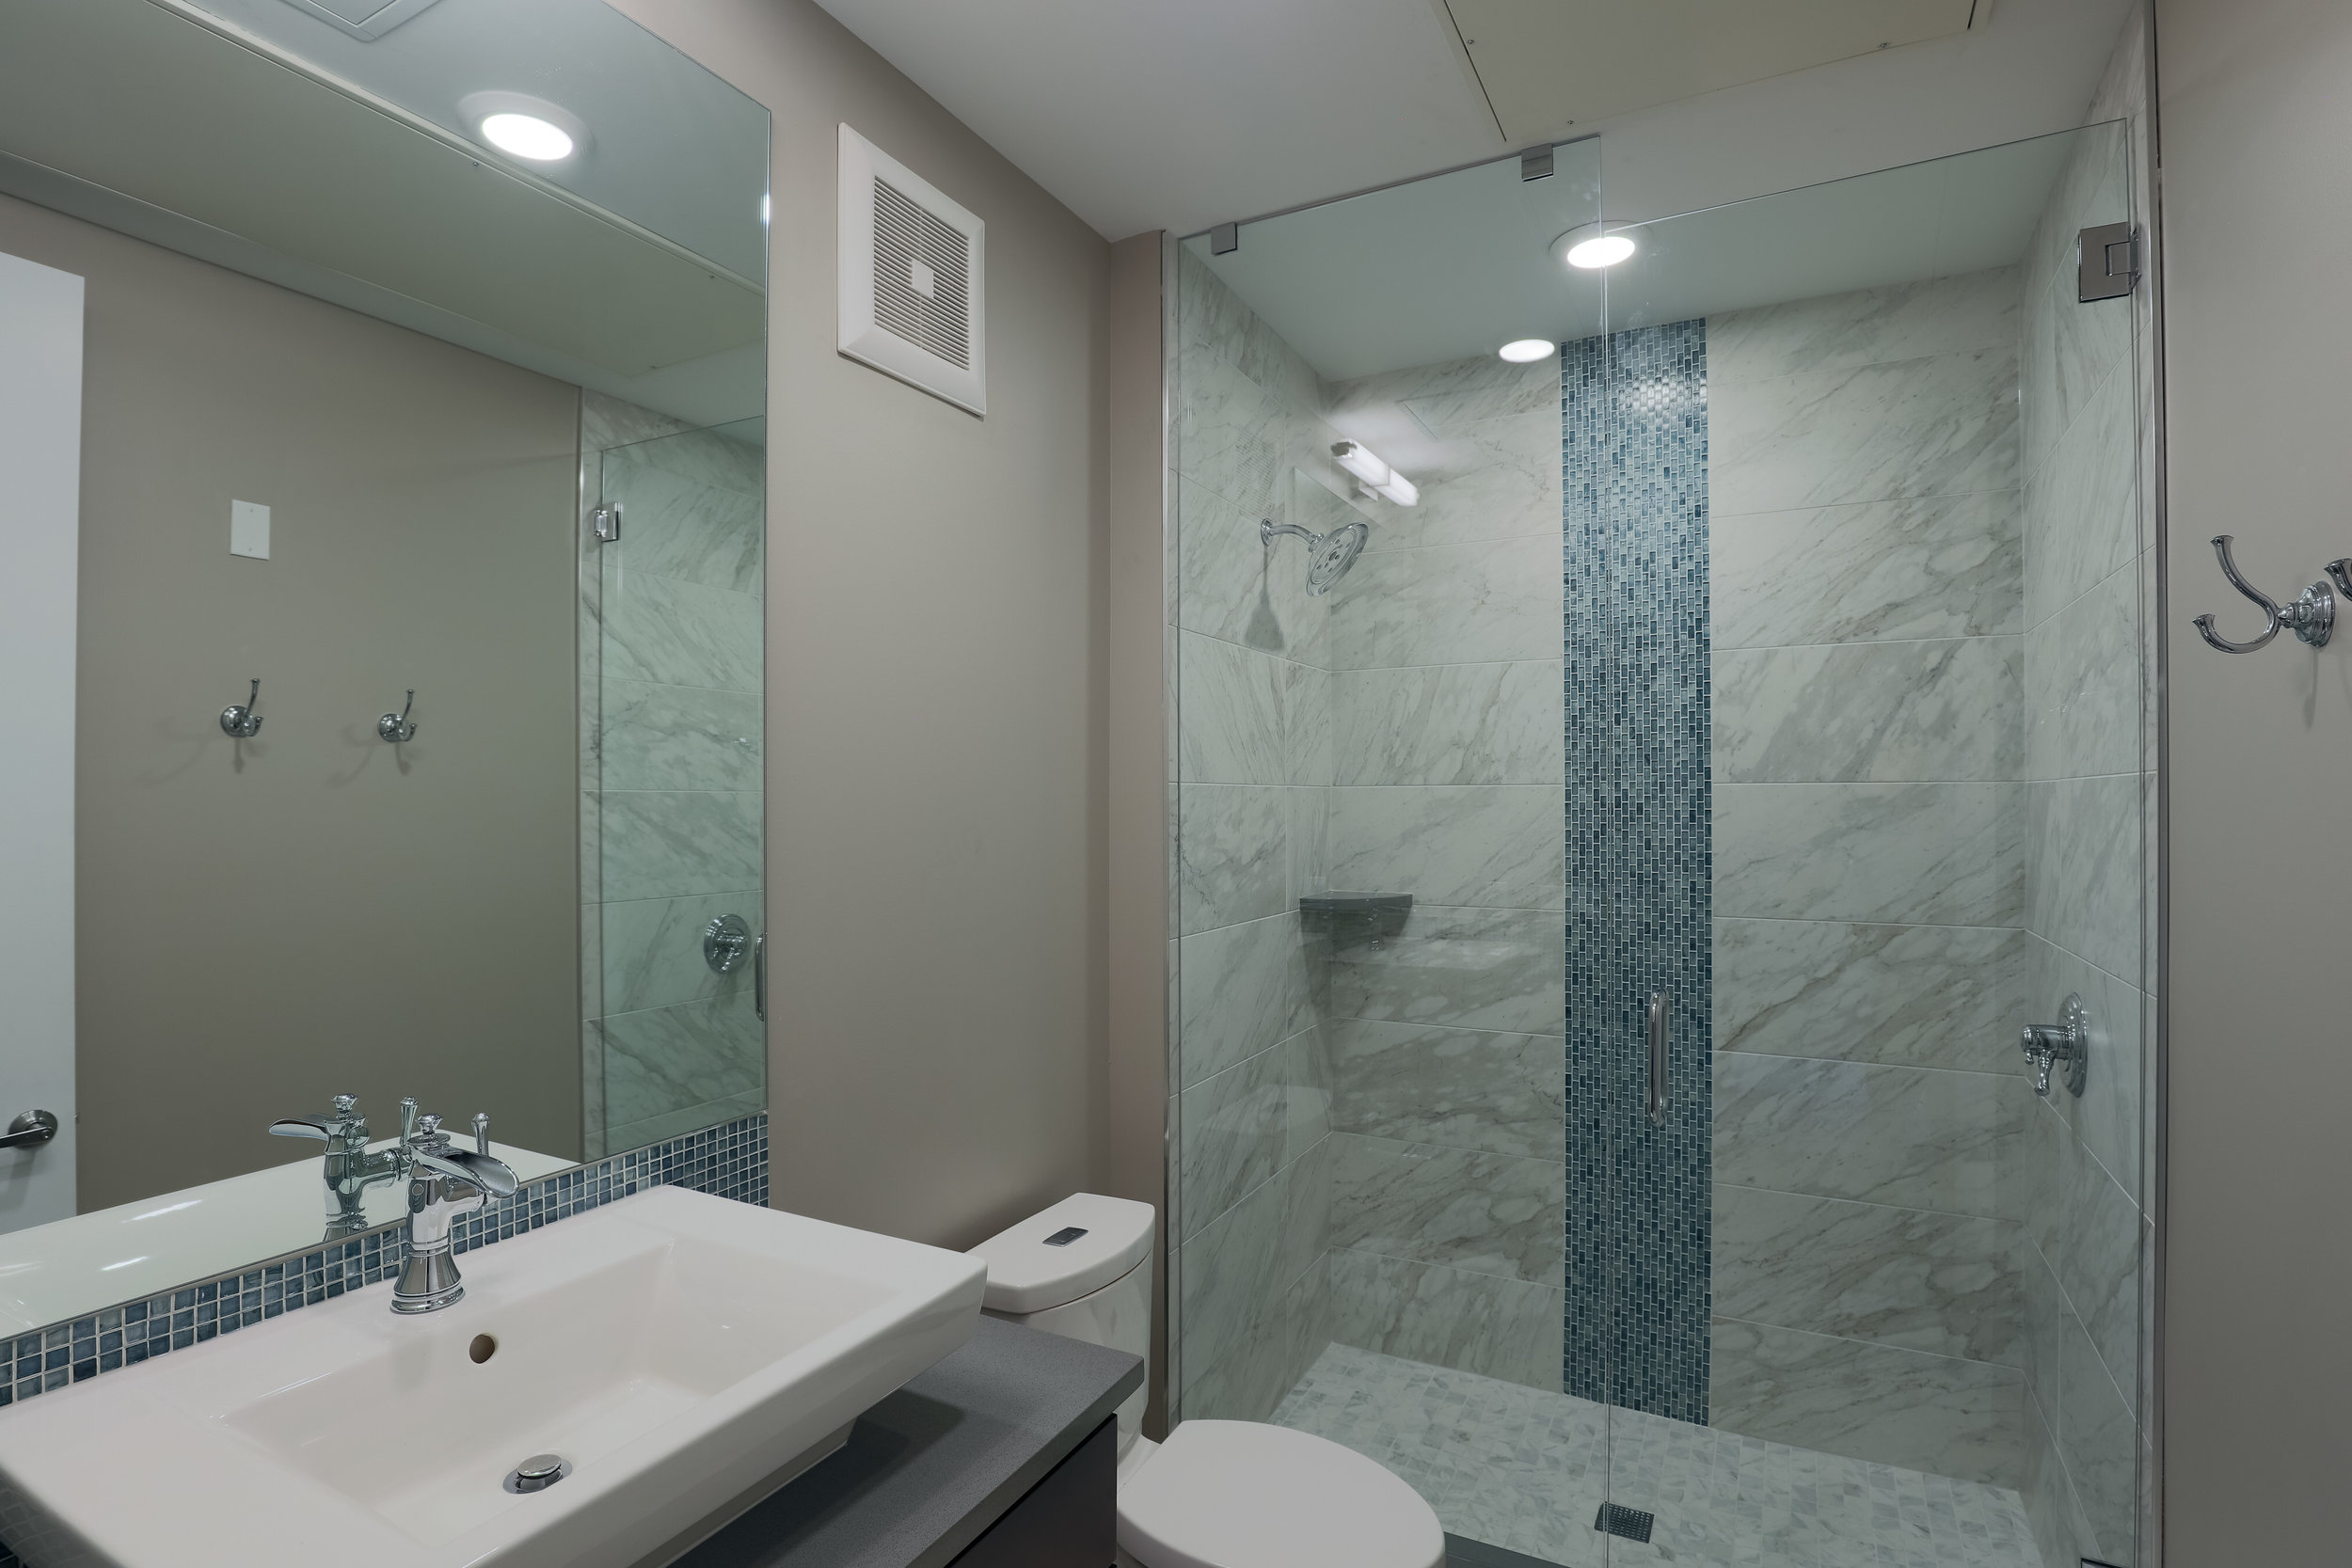 MINERS POINT  | 701 12th Street | Secondary Bath Detail| Sold & Occupied Unit